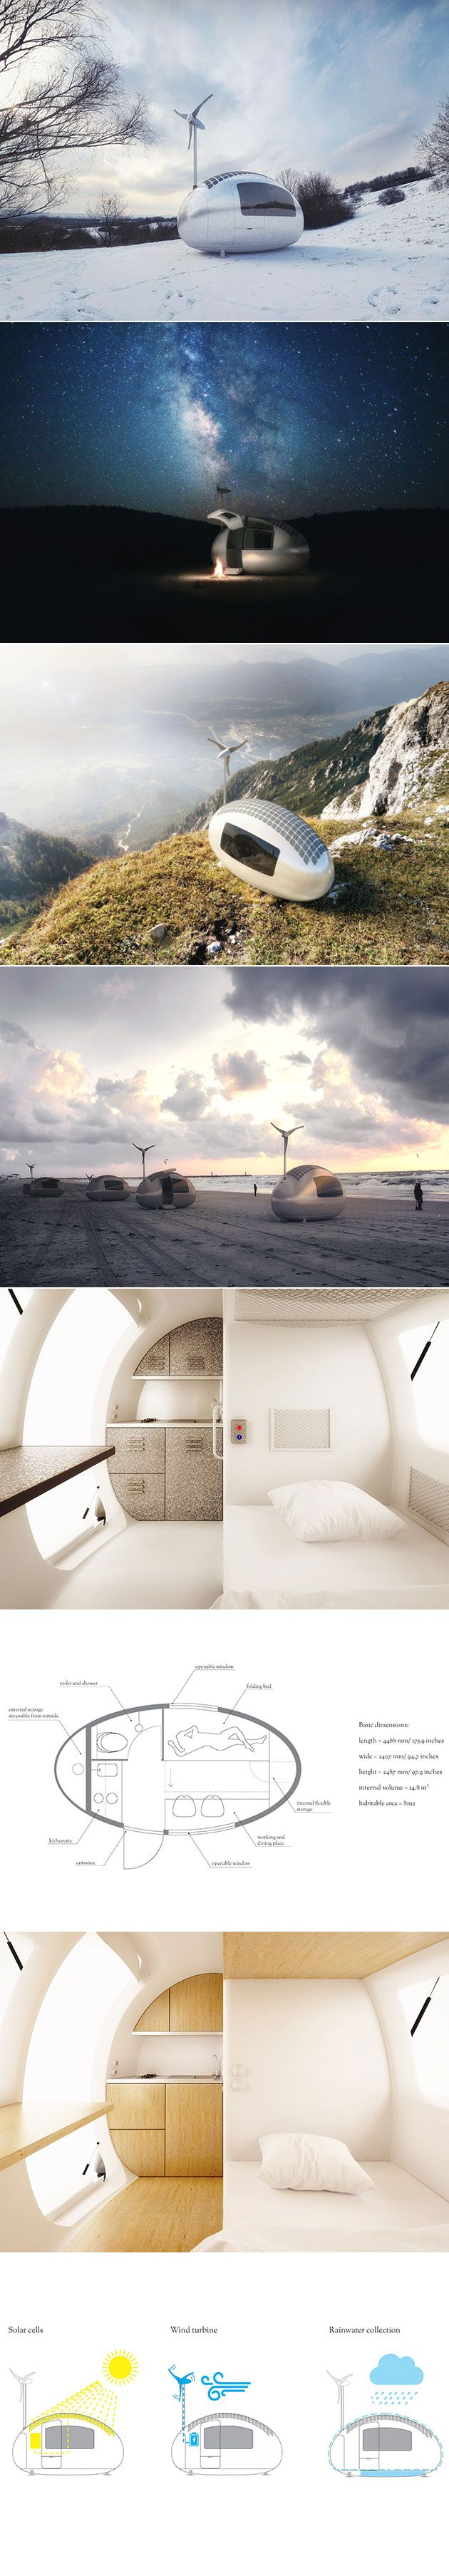 Is your dream to live off-grid in any place of your choosing? The tiny egg-shaped Ecocapsule could be the low-energy home you're looking for. Designed by Bratislava-based Nice Architects, the Ecocapsule is a micro-shelter that packs an impressive sustainable punch—the ultra-portable house is powered by solar and wind energy, and also includes rainwater collection and filtration.